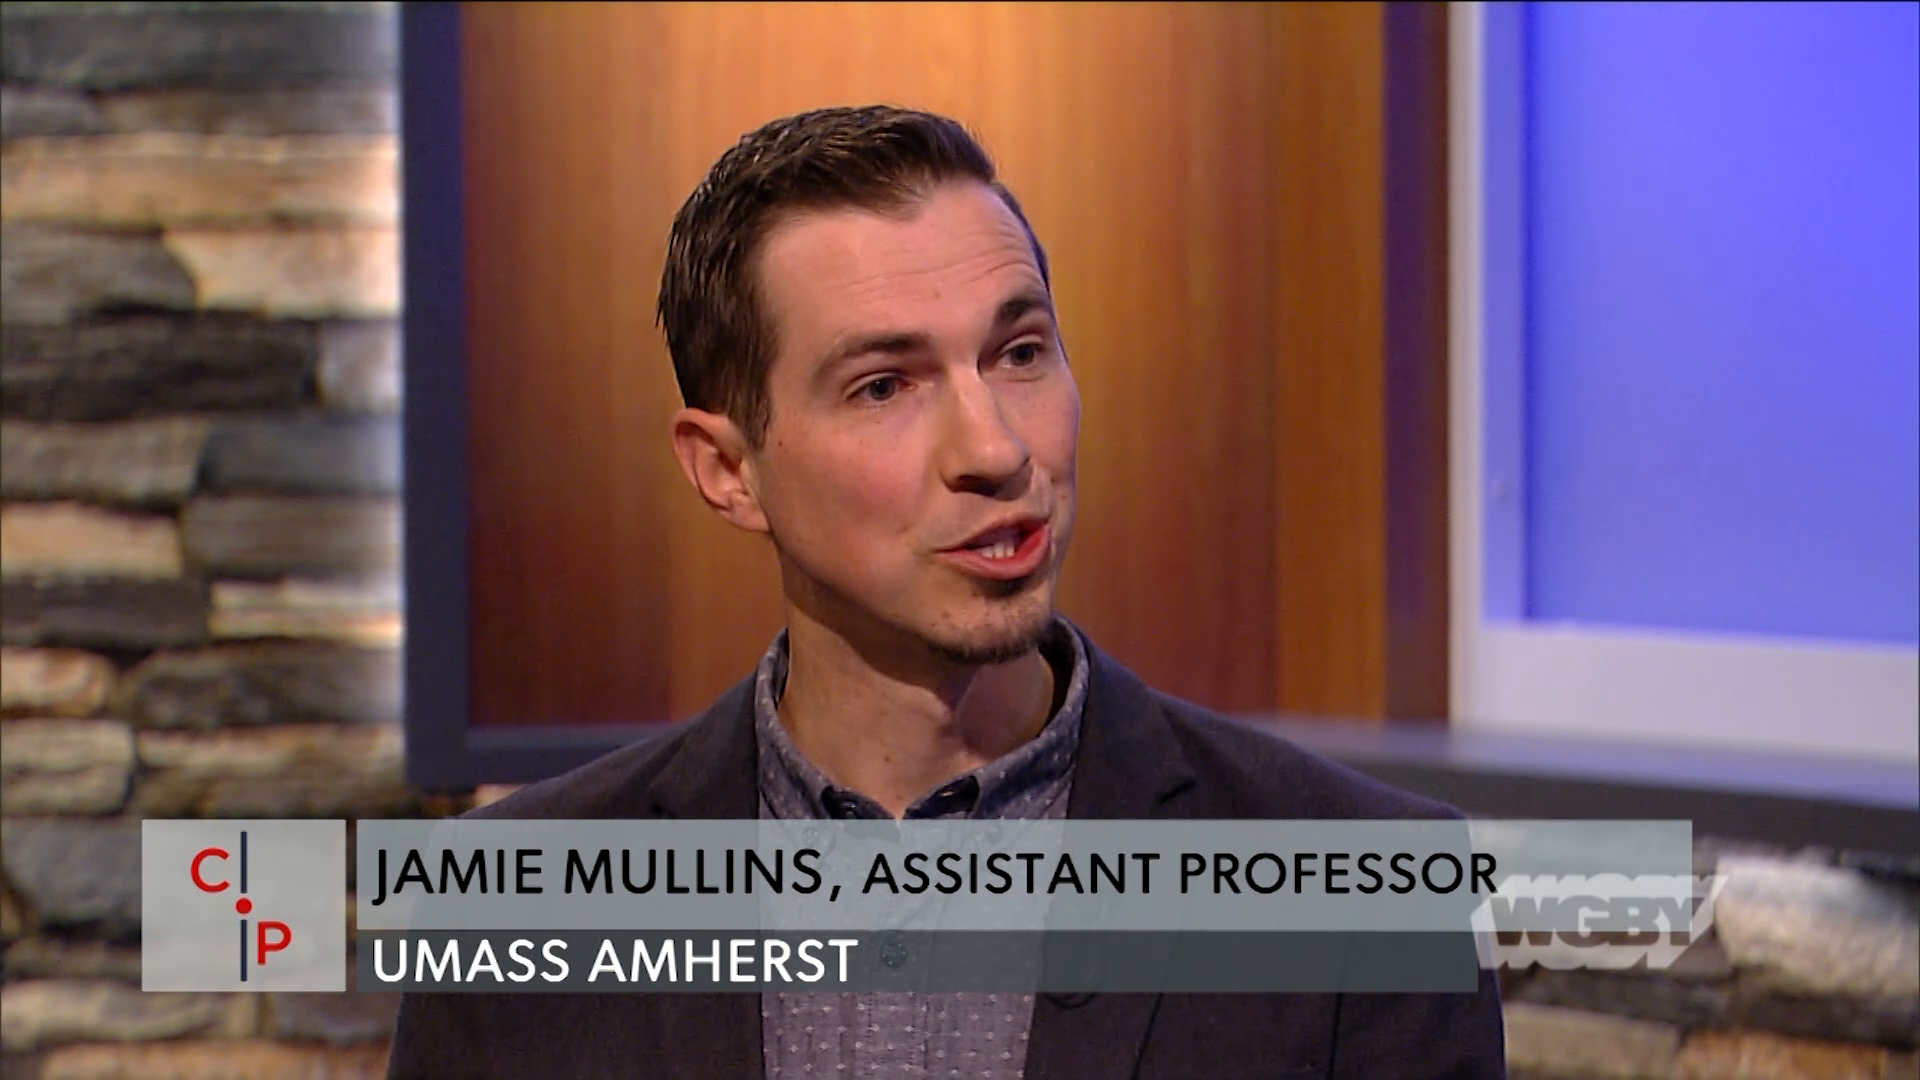 UMass Amherst Professor Jamie Mullins provides insight to into his research examining how rising temperatures impact mental health.